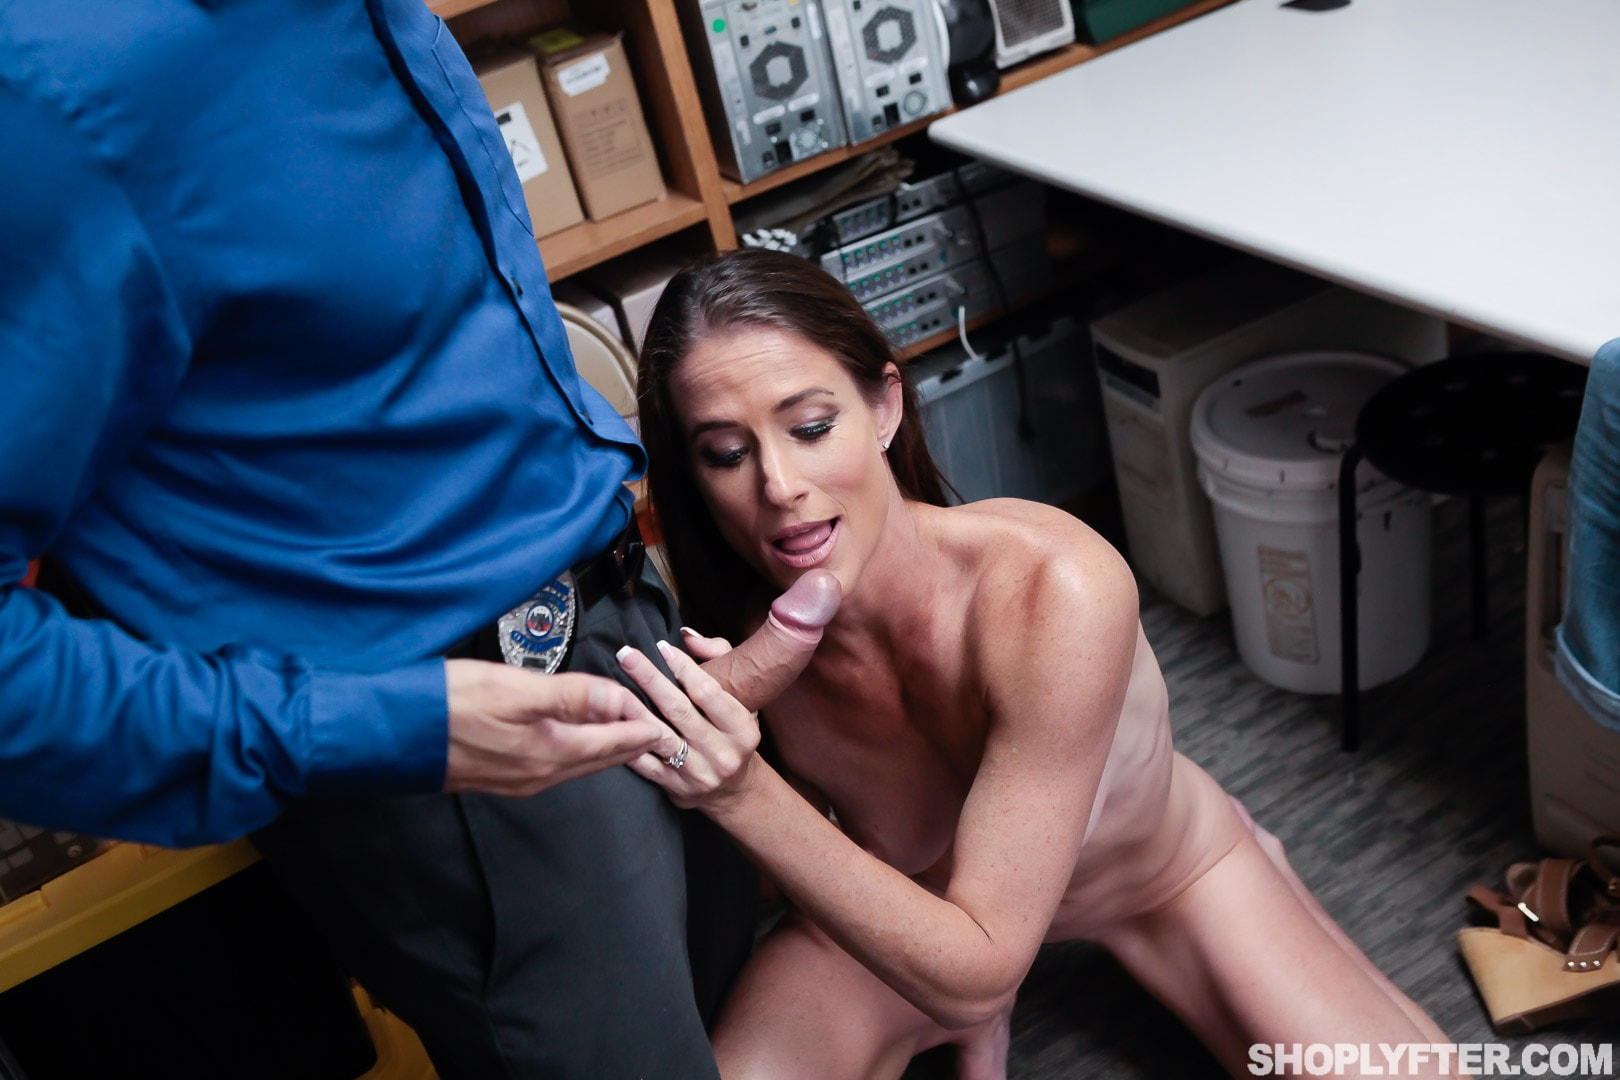 Team Skeet 'Case No. 4185156' starring Sofie Marie (Photo 78)